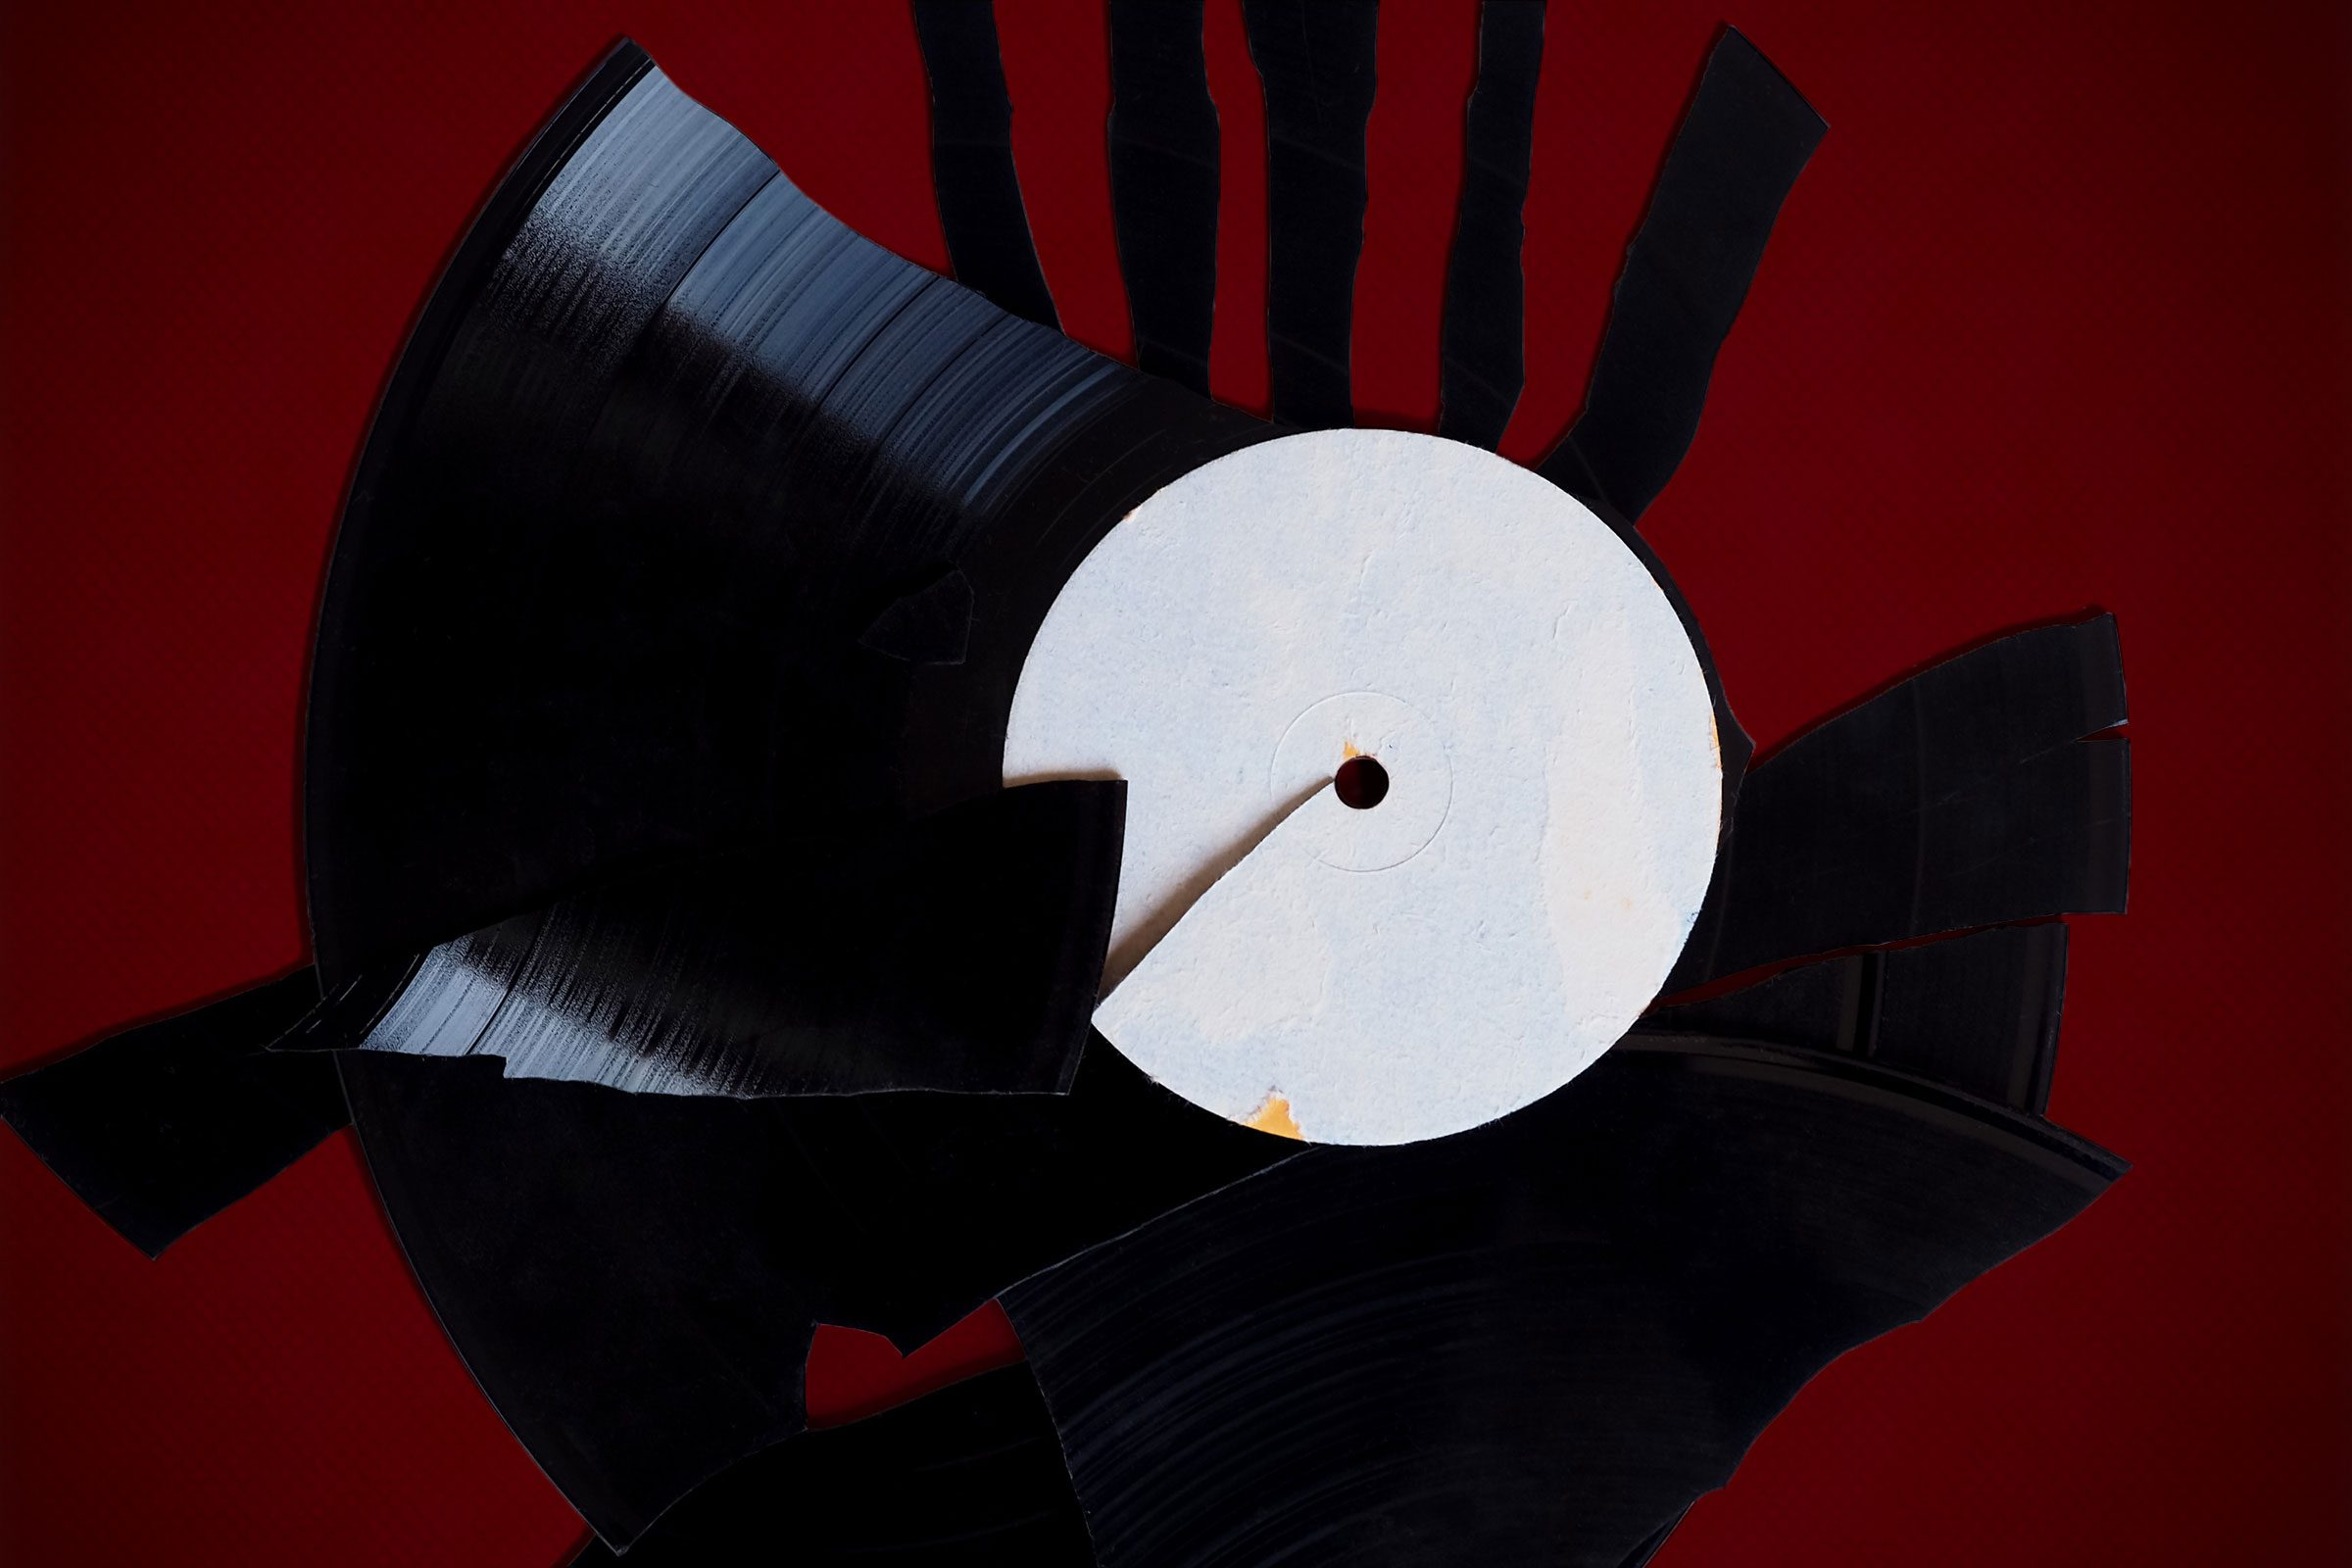 broken record on red background